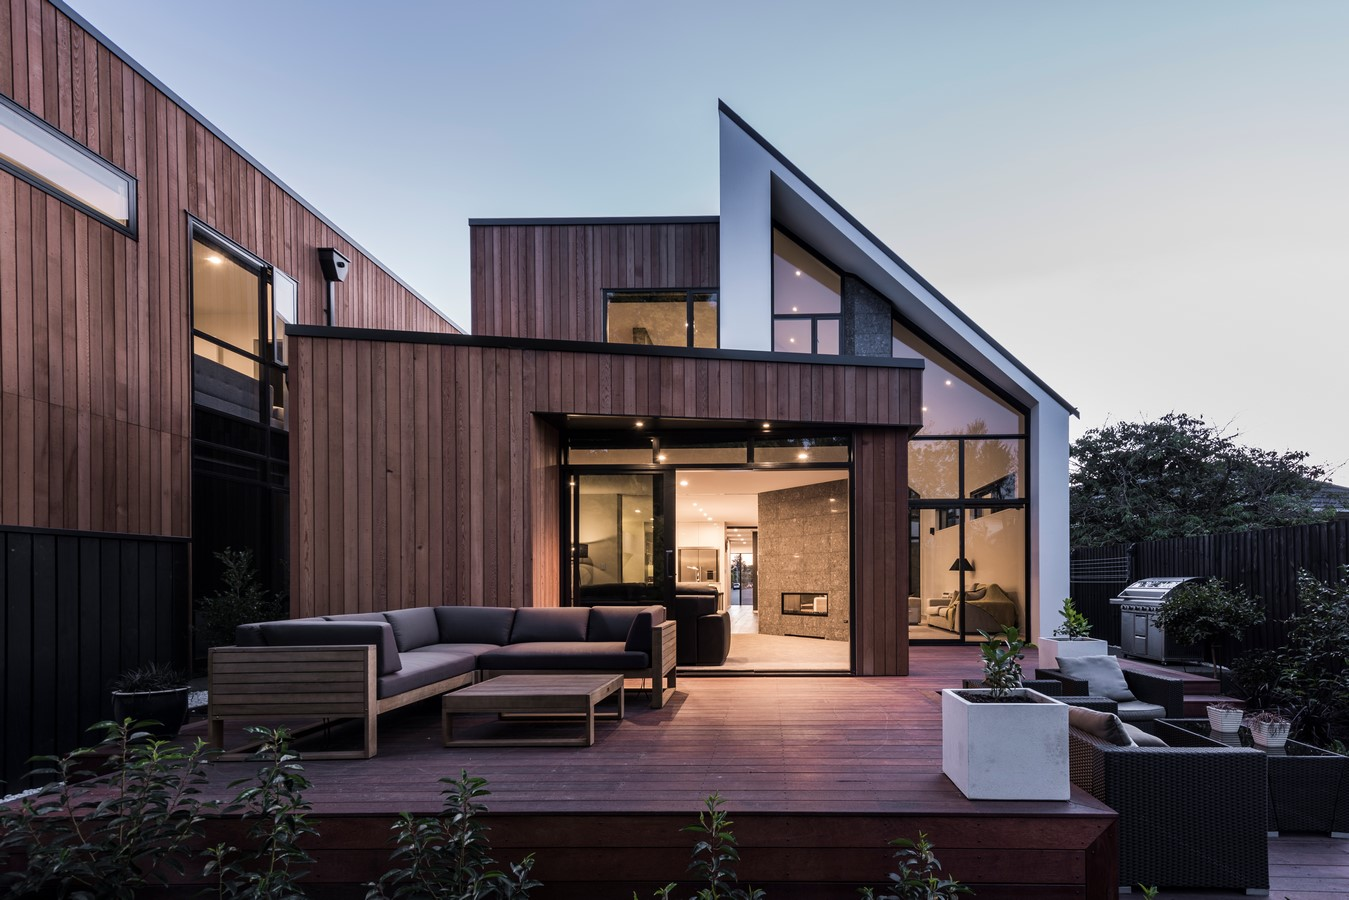 Half Gable Townhouses by South Architects - Sheet2